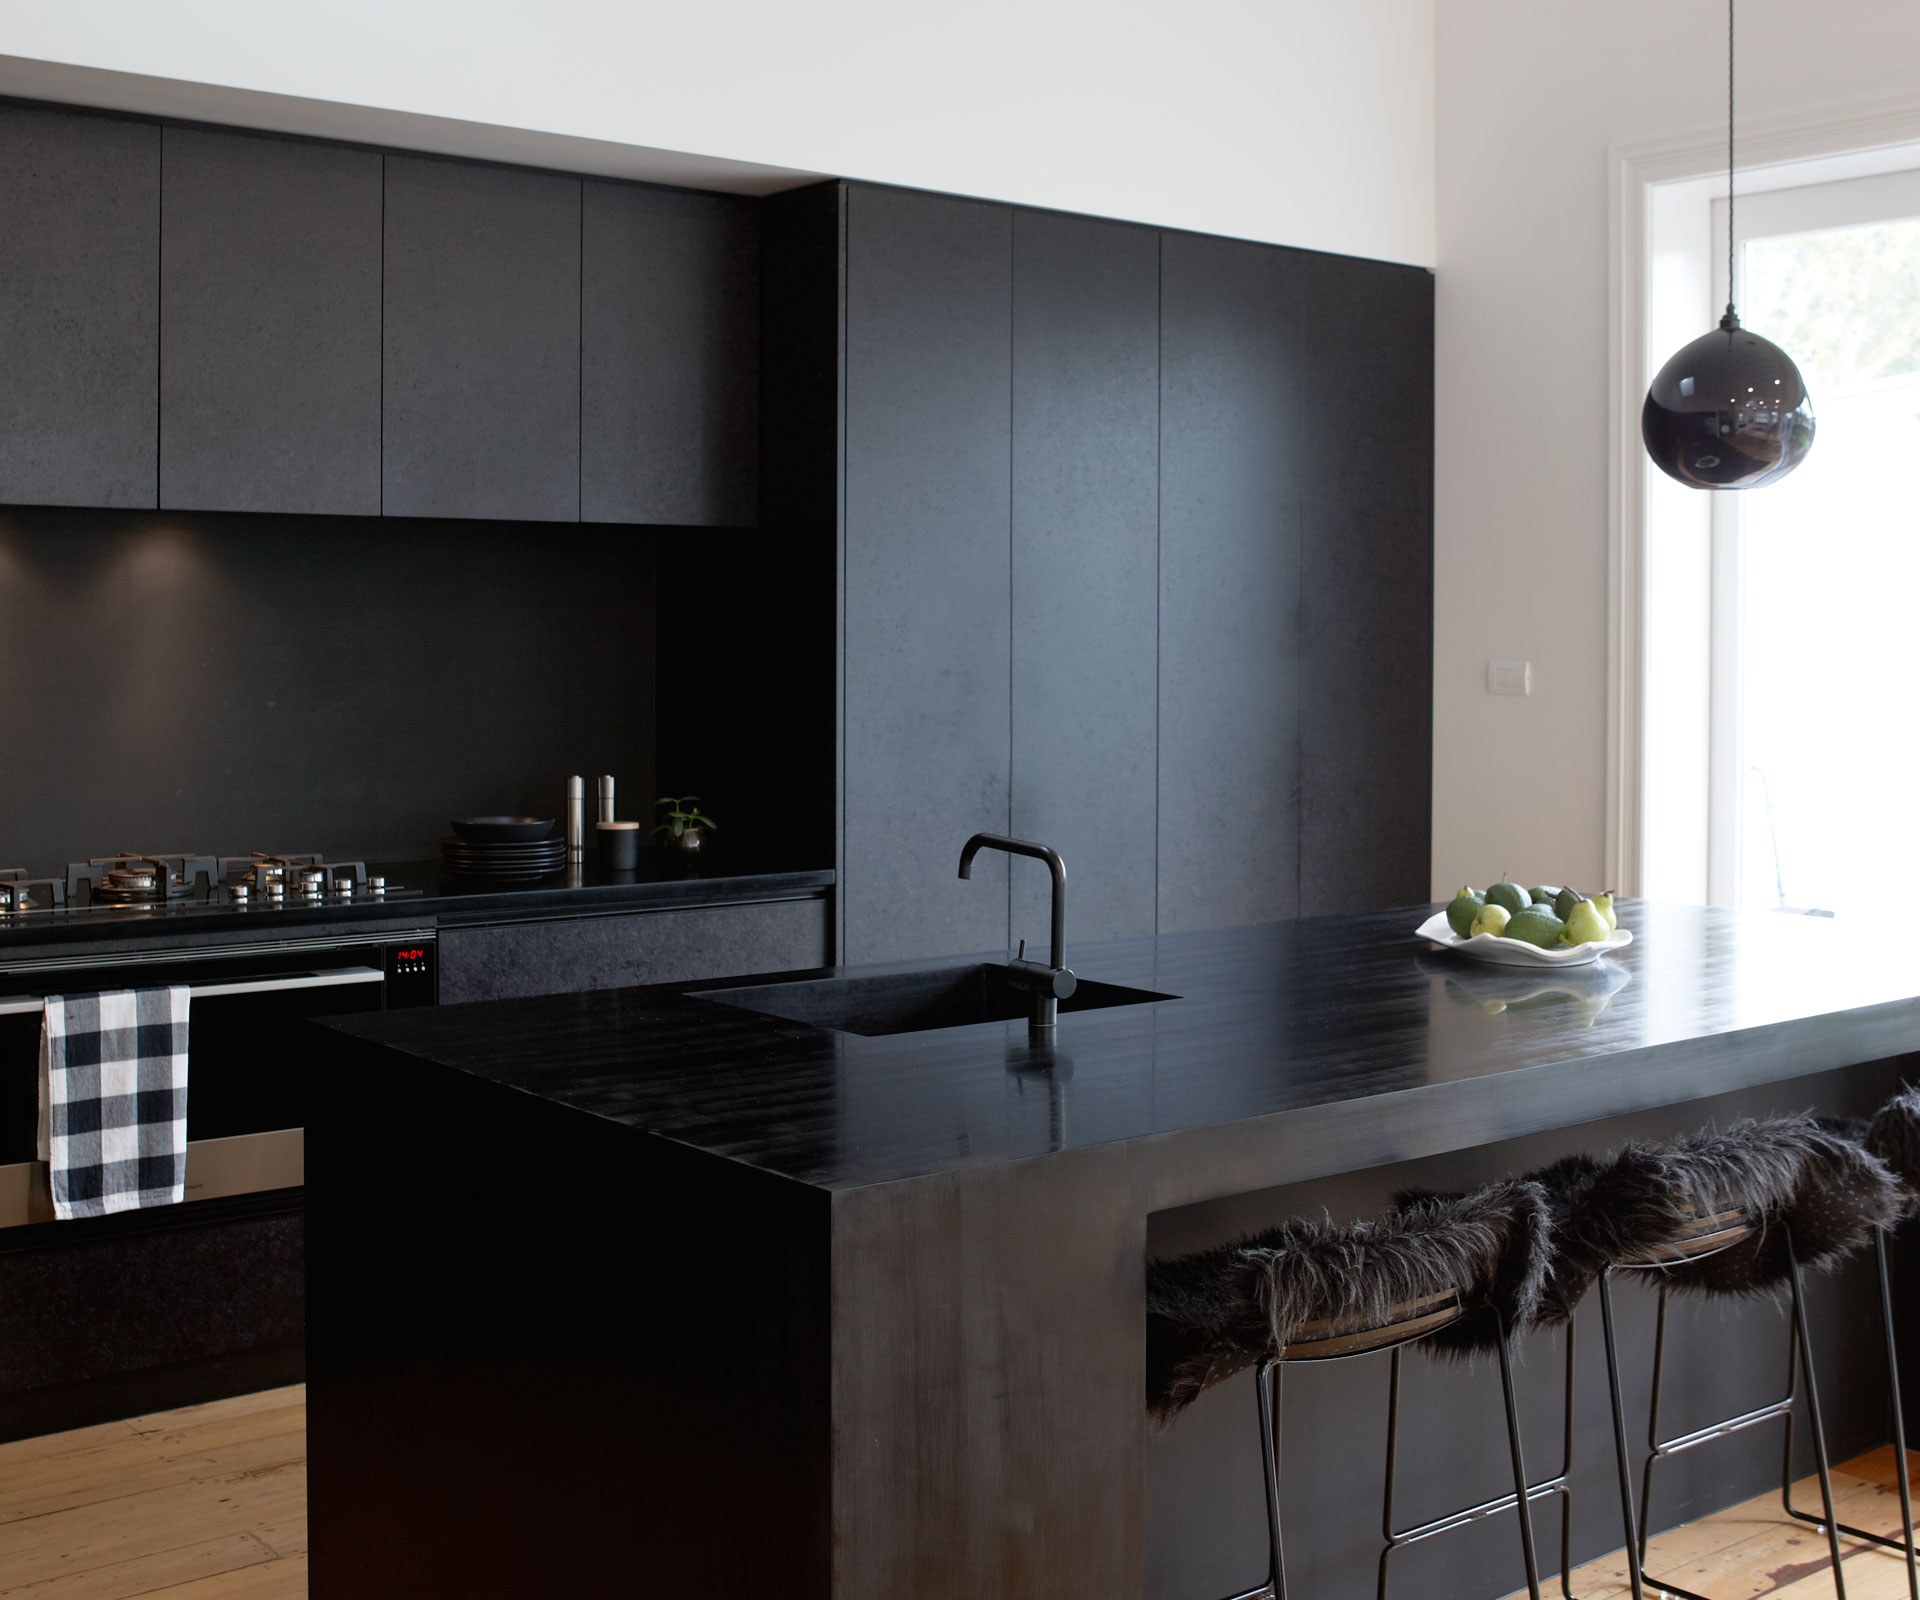 Matte Kitchen Cabinets A Matte Black Kitchen Makes A Bold Statement In This